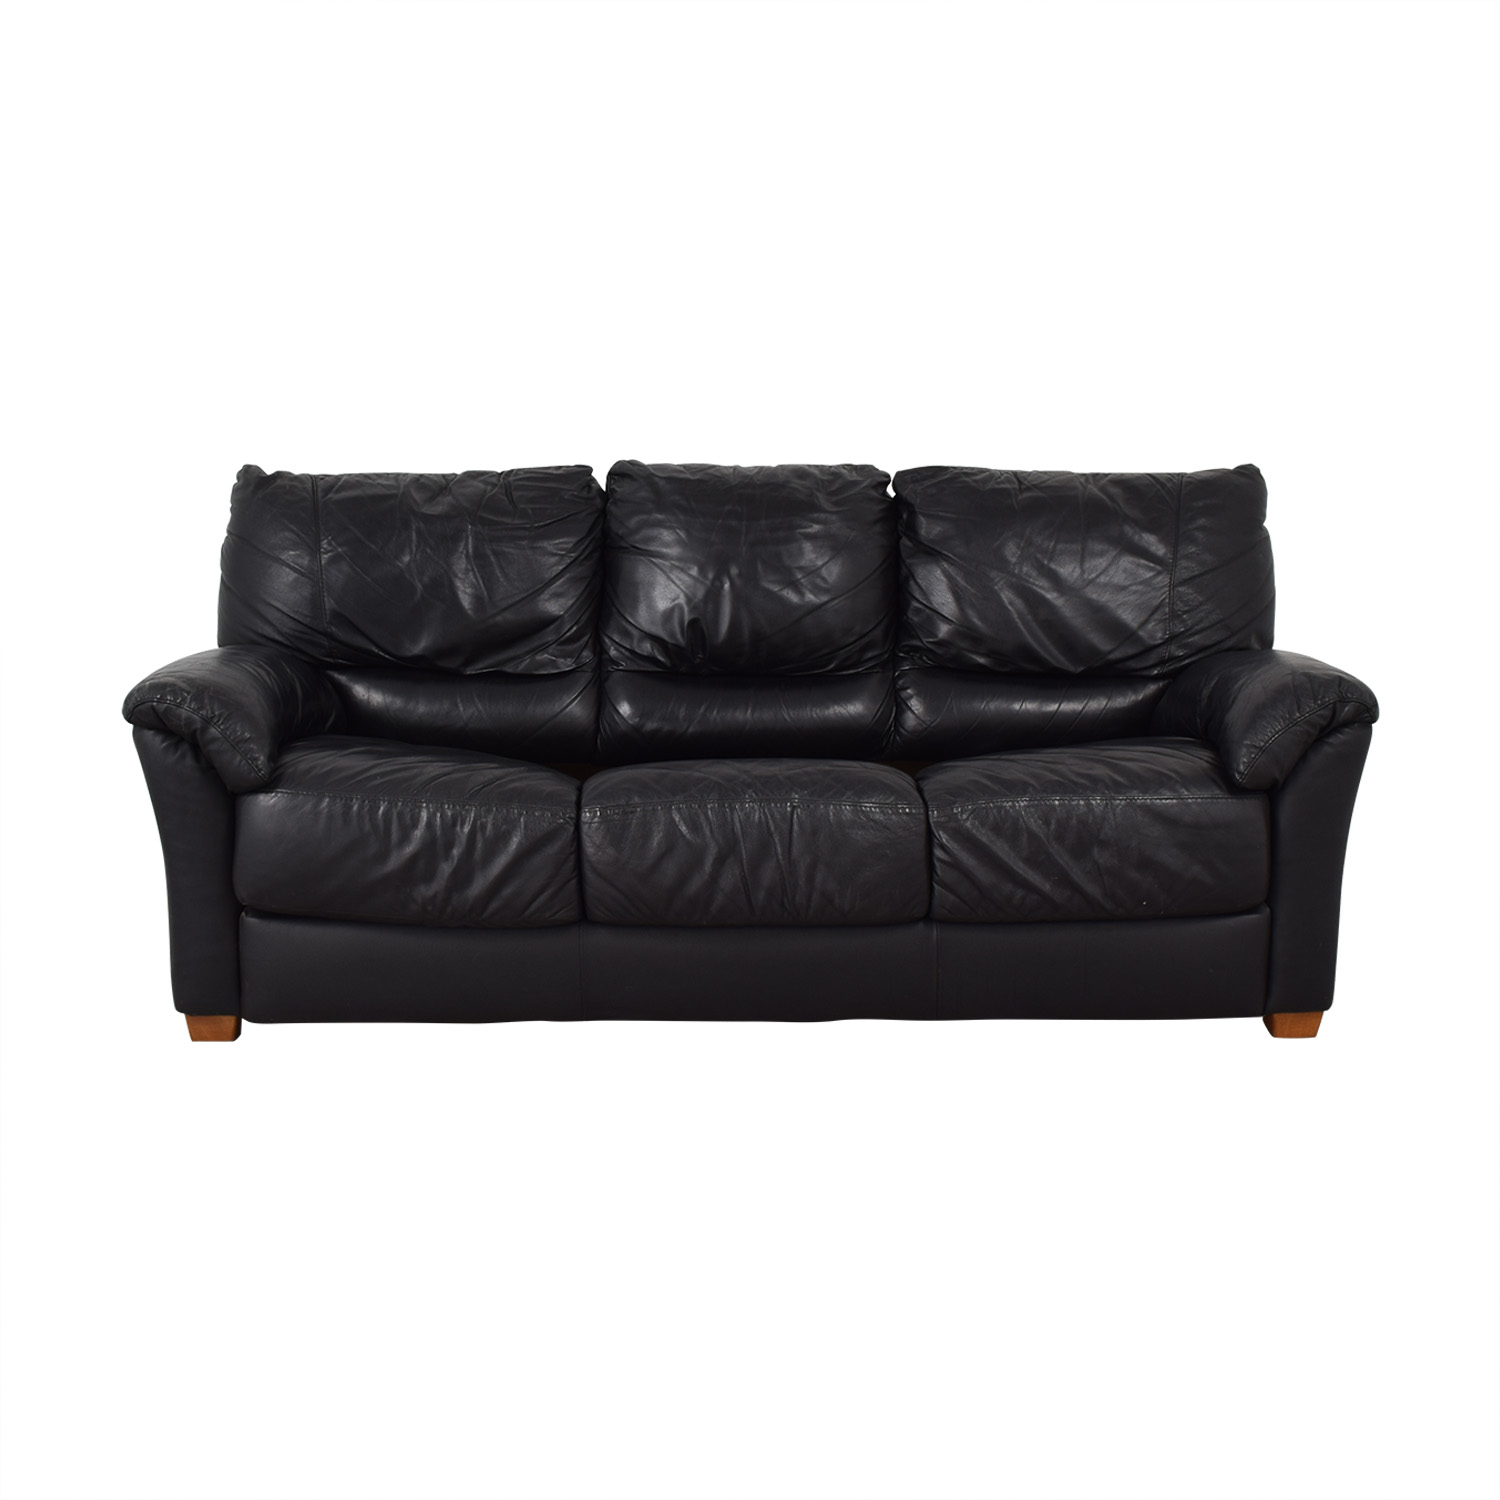 Tilly Fabric Sofa Queen Sleeper 84 Off Black Three Cushion Convertible Full Sleeper Sofa Sofas